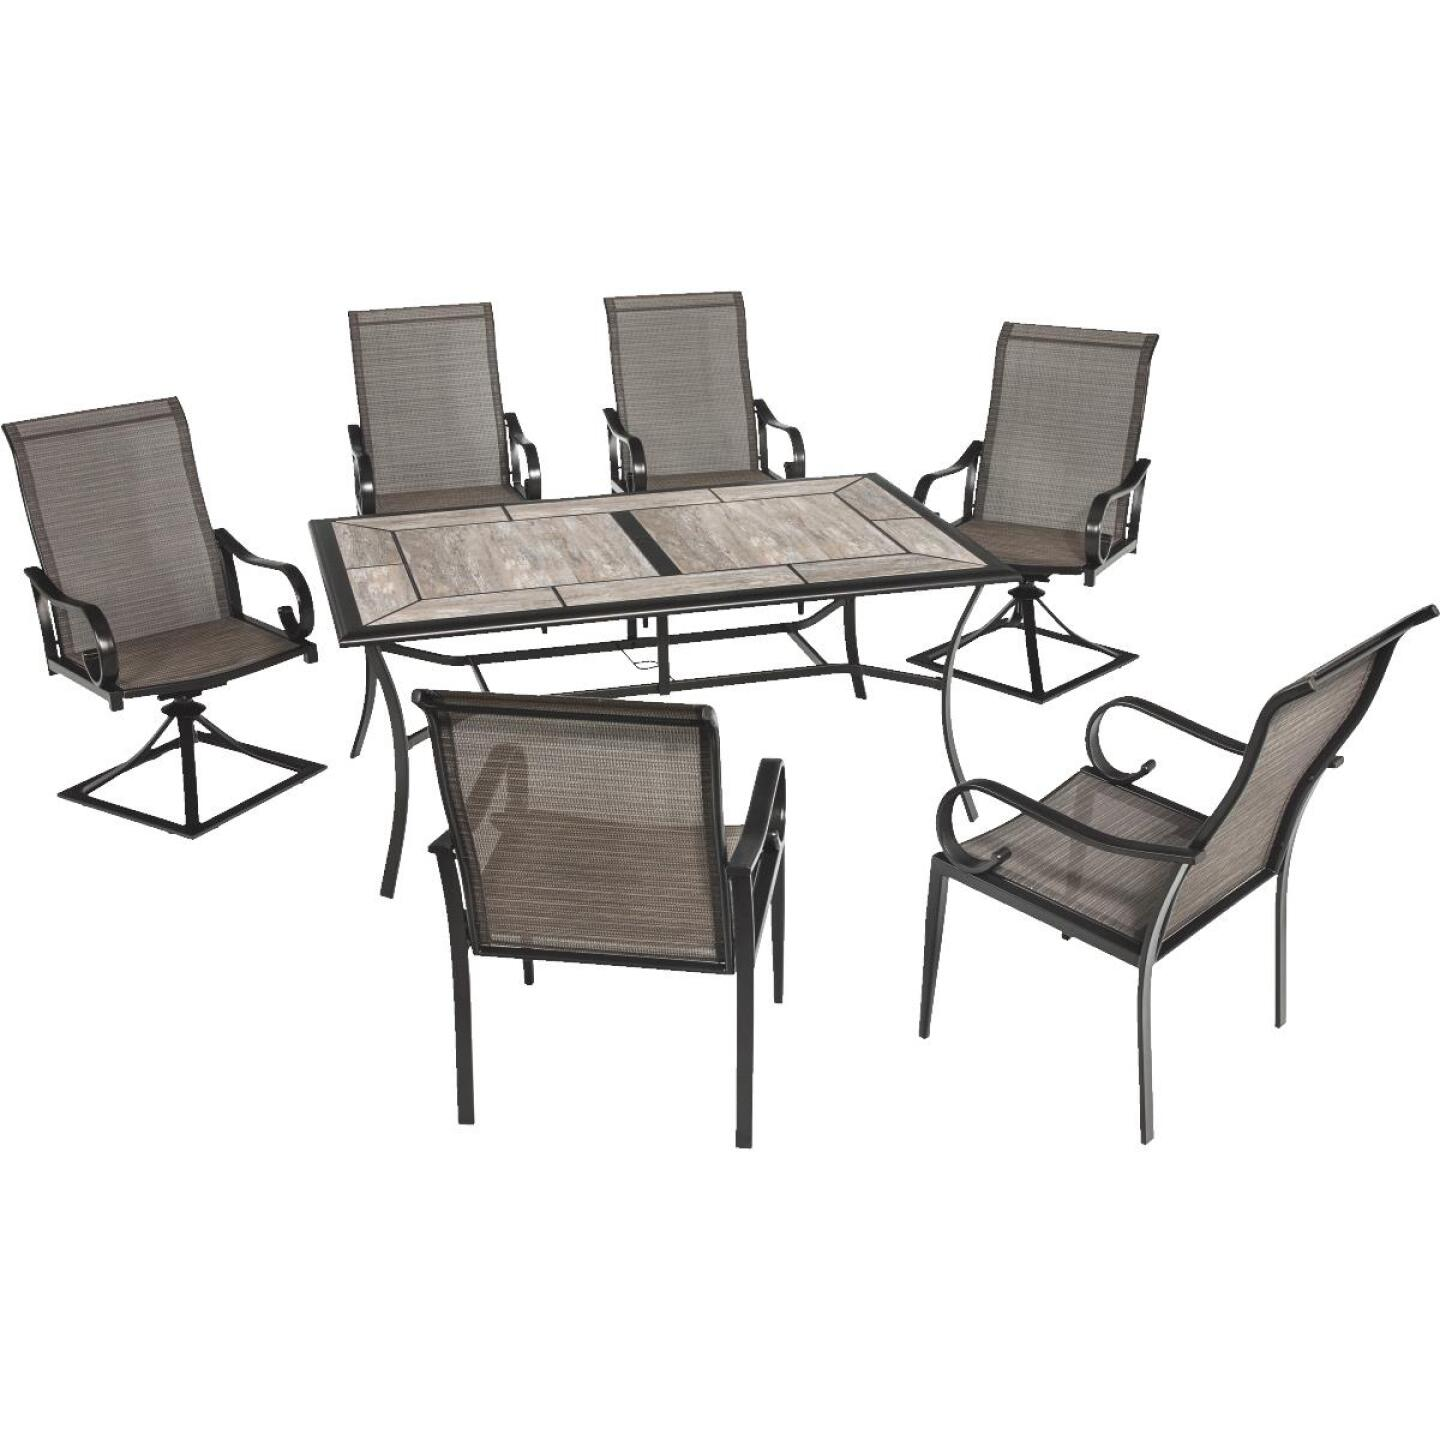 Outdoor Expressions Berkshire 7-Piece Dining Set Image 38